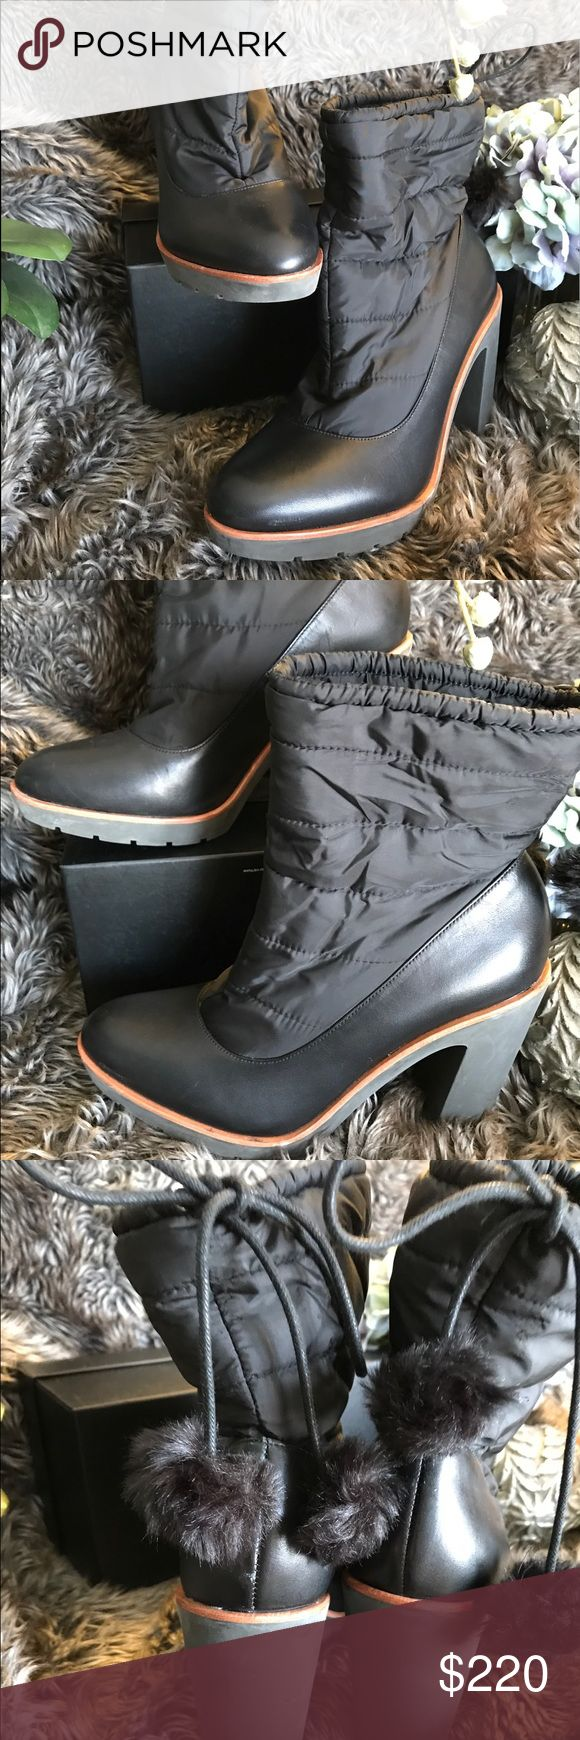 25+ best ideas about All weather boots on Pinterest